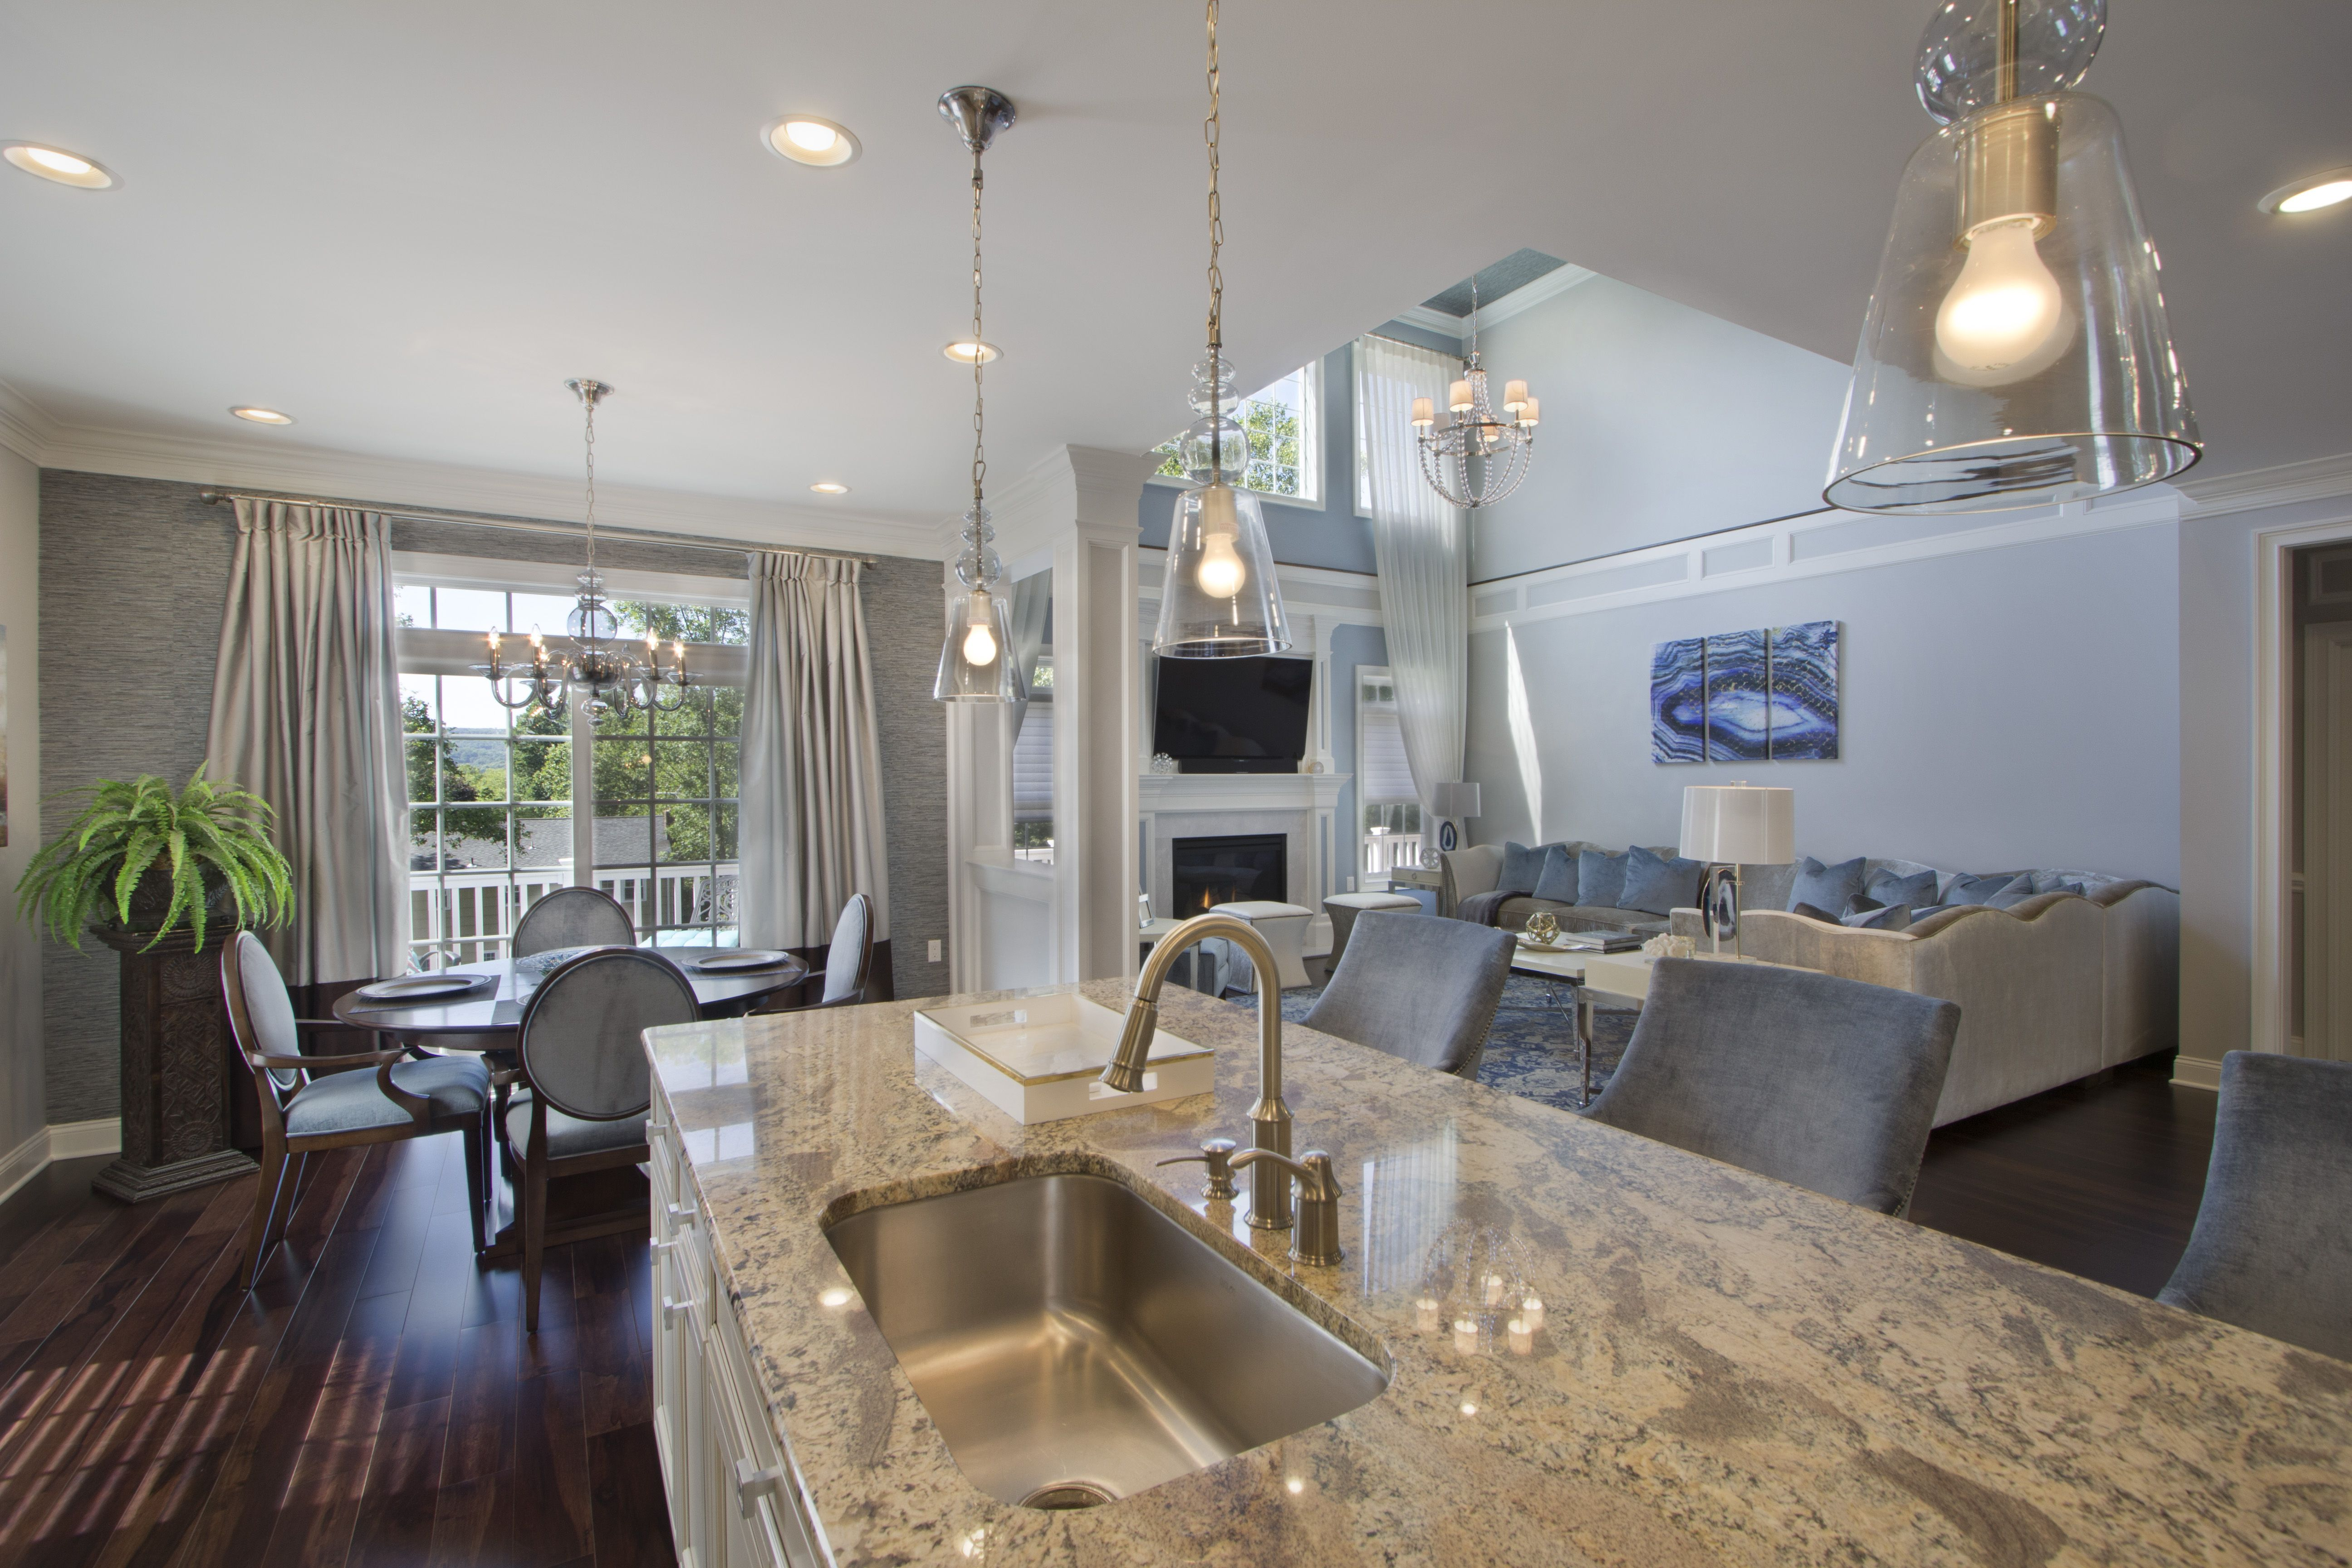 Beautiful kitchen counter designed by VDA in Morristown, NJ ...